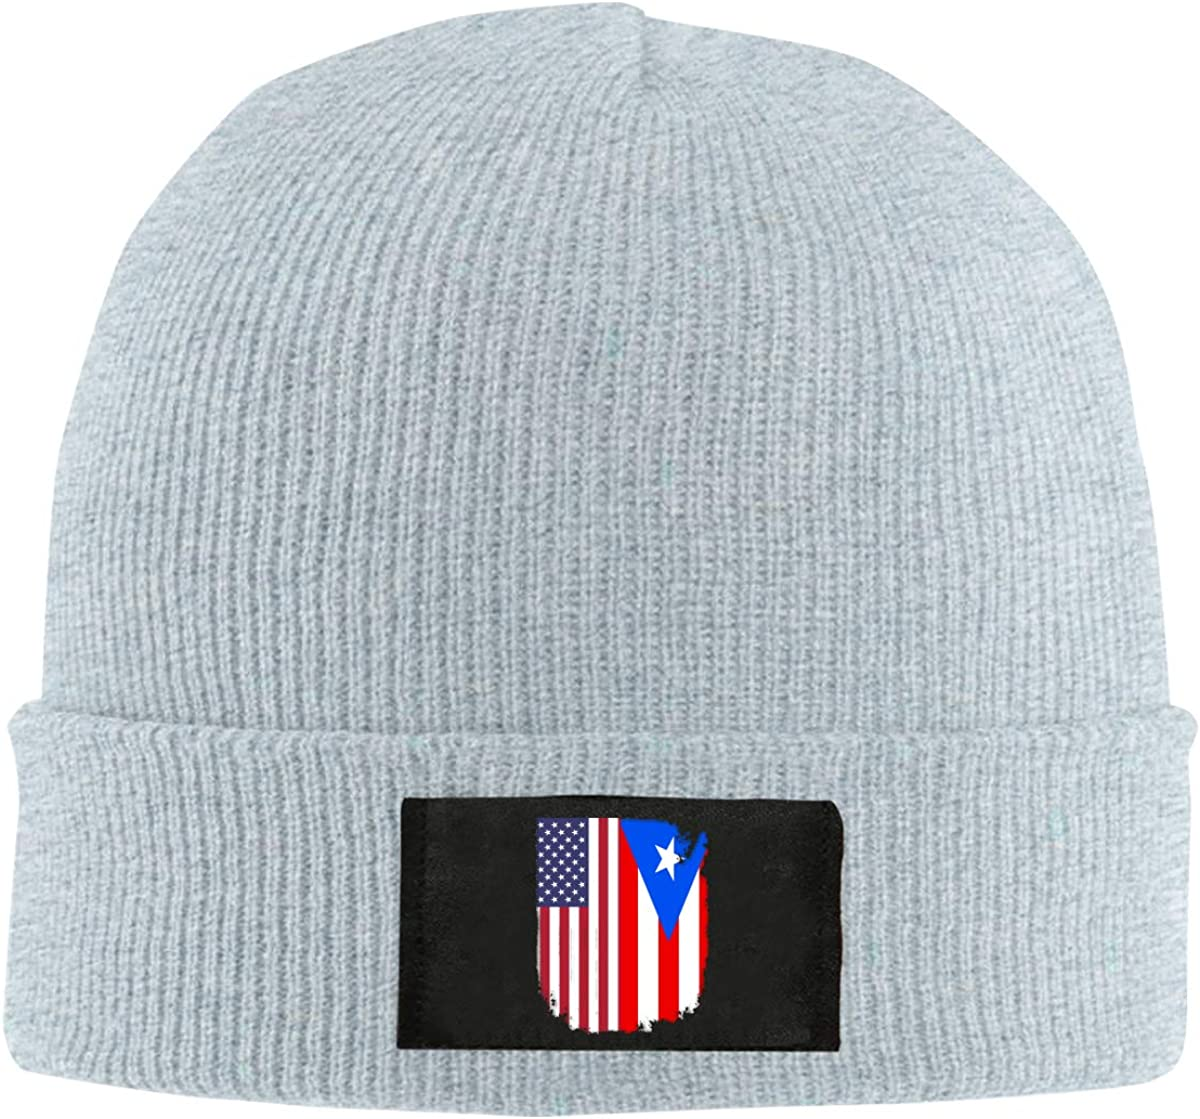 Puerto Rico American Flag Men Women Knitted Hat Comfortable Snowboarding Hat